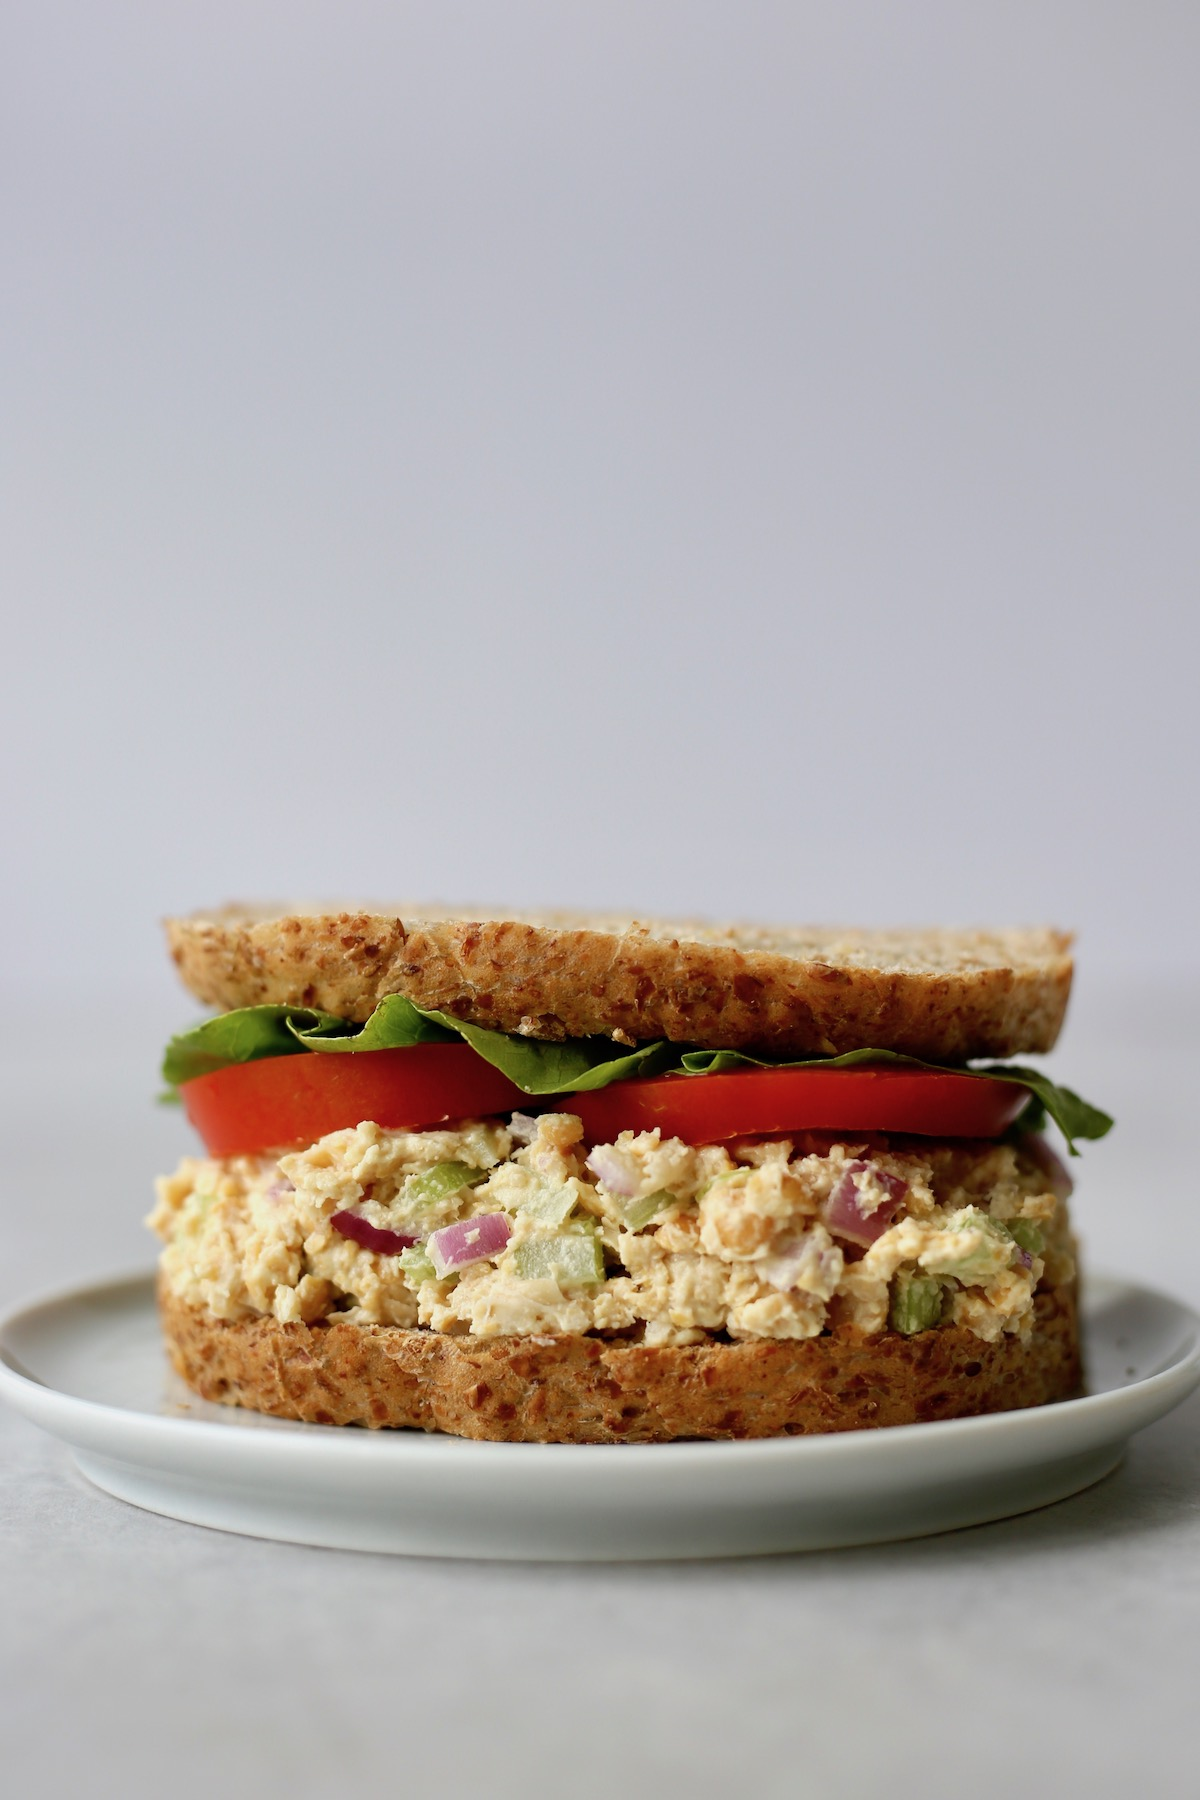 a chickpea salad sandwich with lettuce and tomato